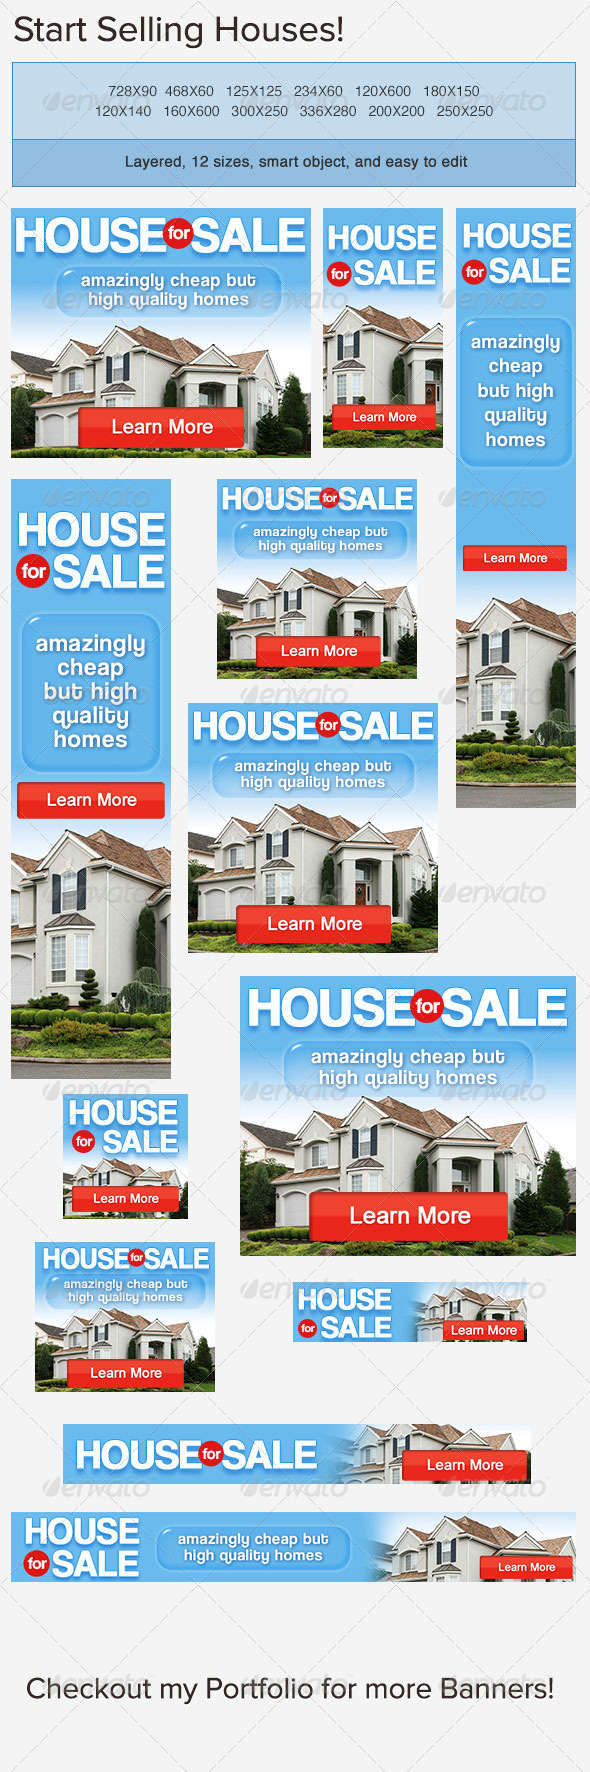 GraphicRiver House for Sale Banner Ad PSD Template 3807247